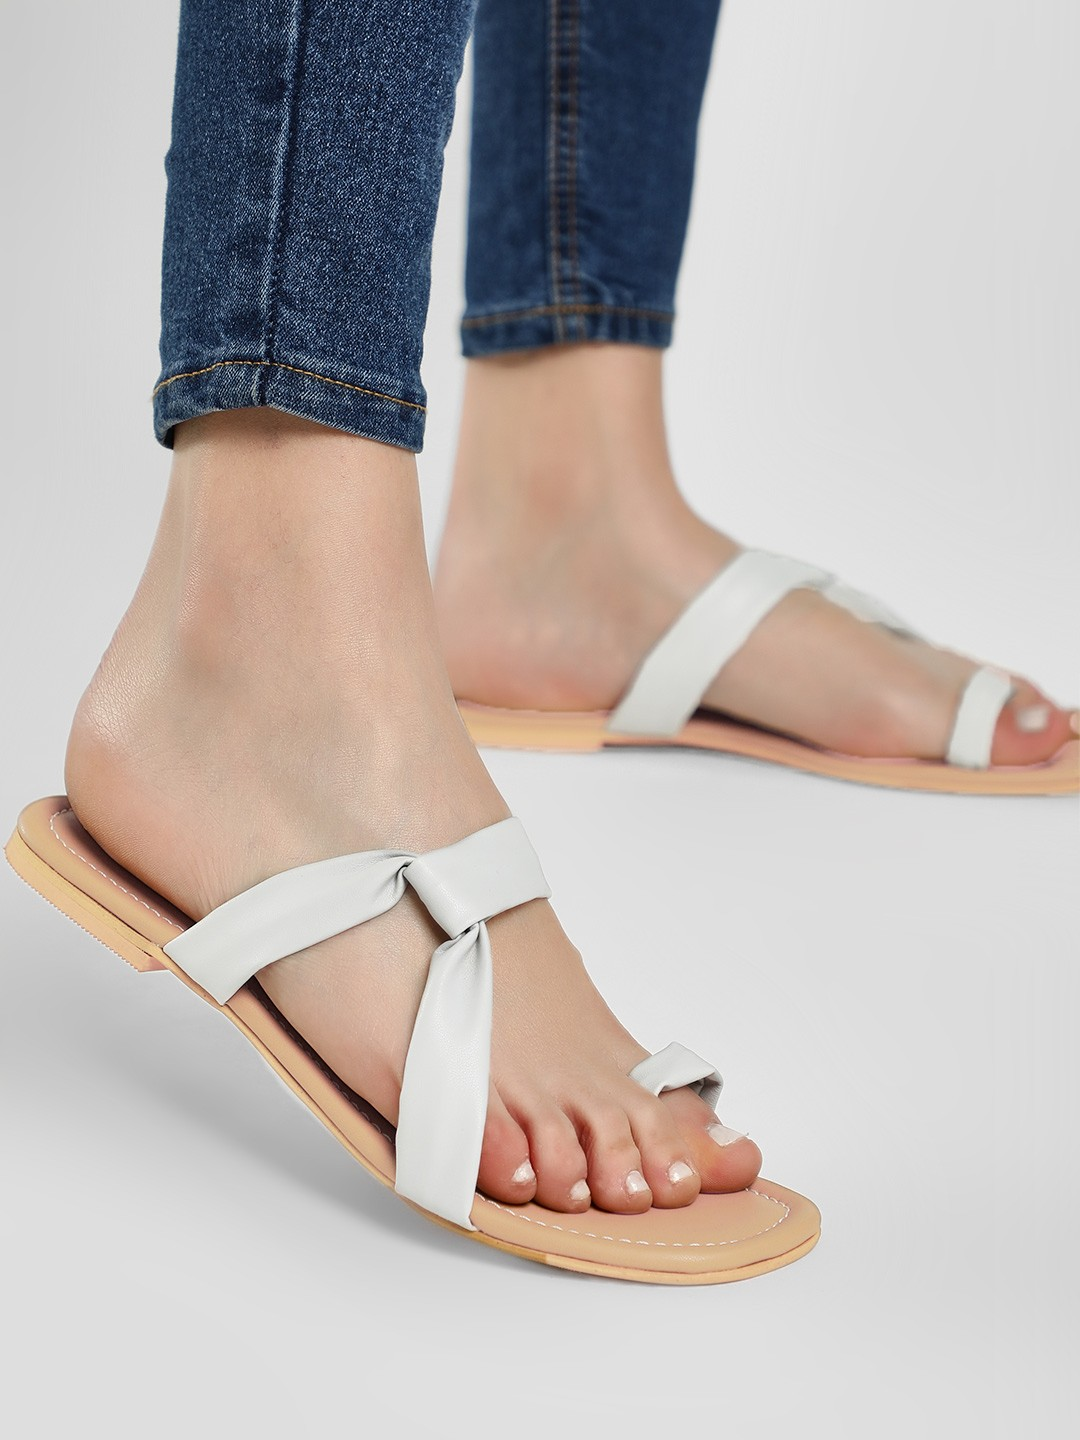 CAi Grey Toe Post Flat Sandals 1